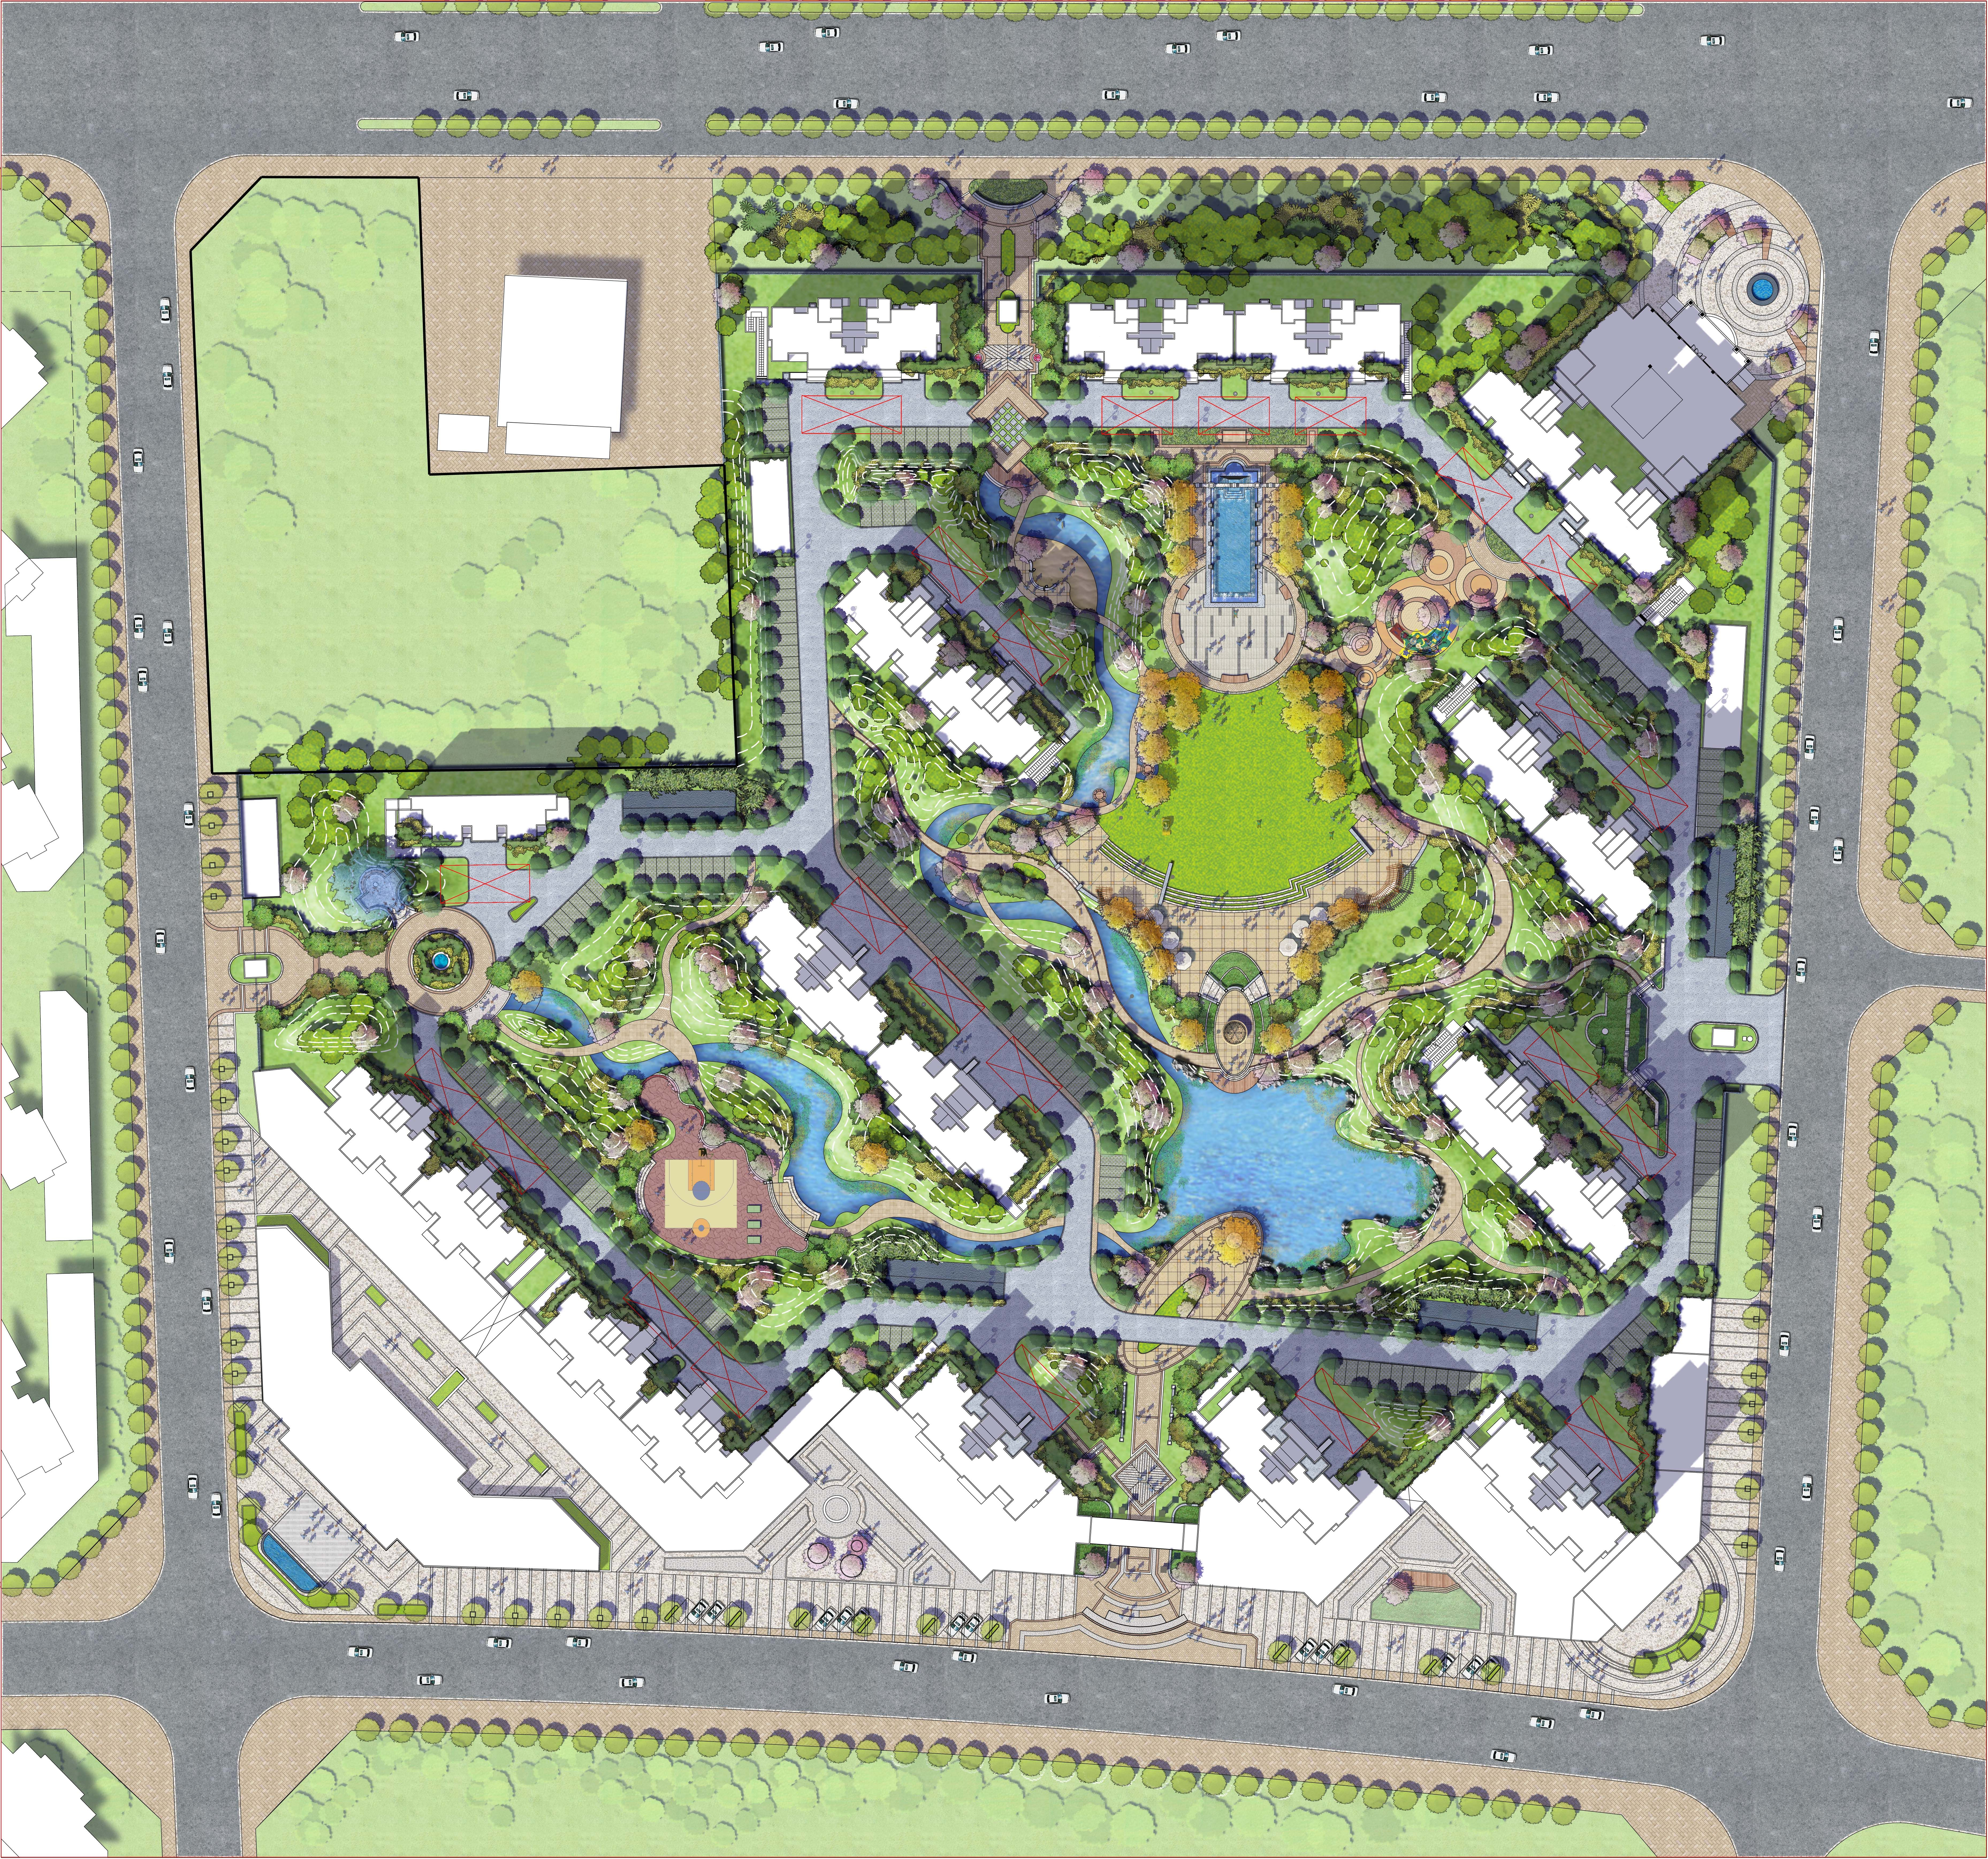 Residential arch highrise residential pinterest master plan landscaping and urban for Residential landscape design plan